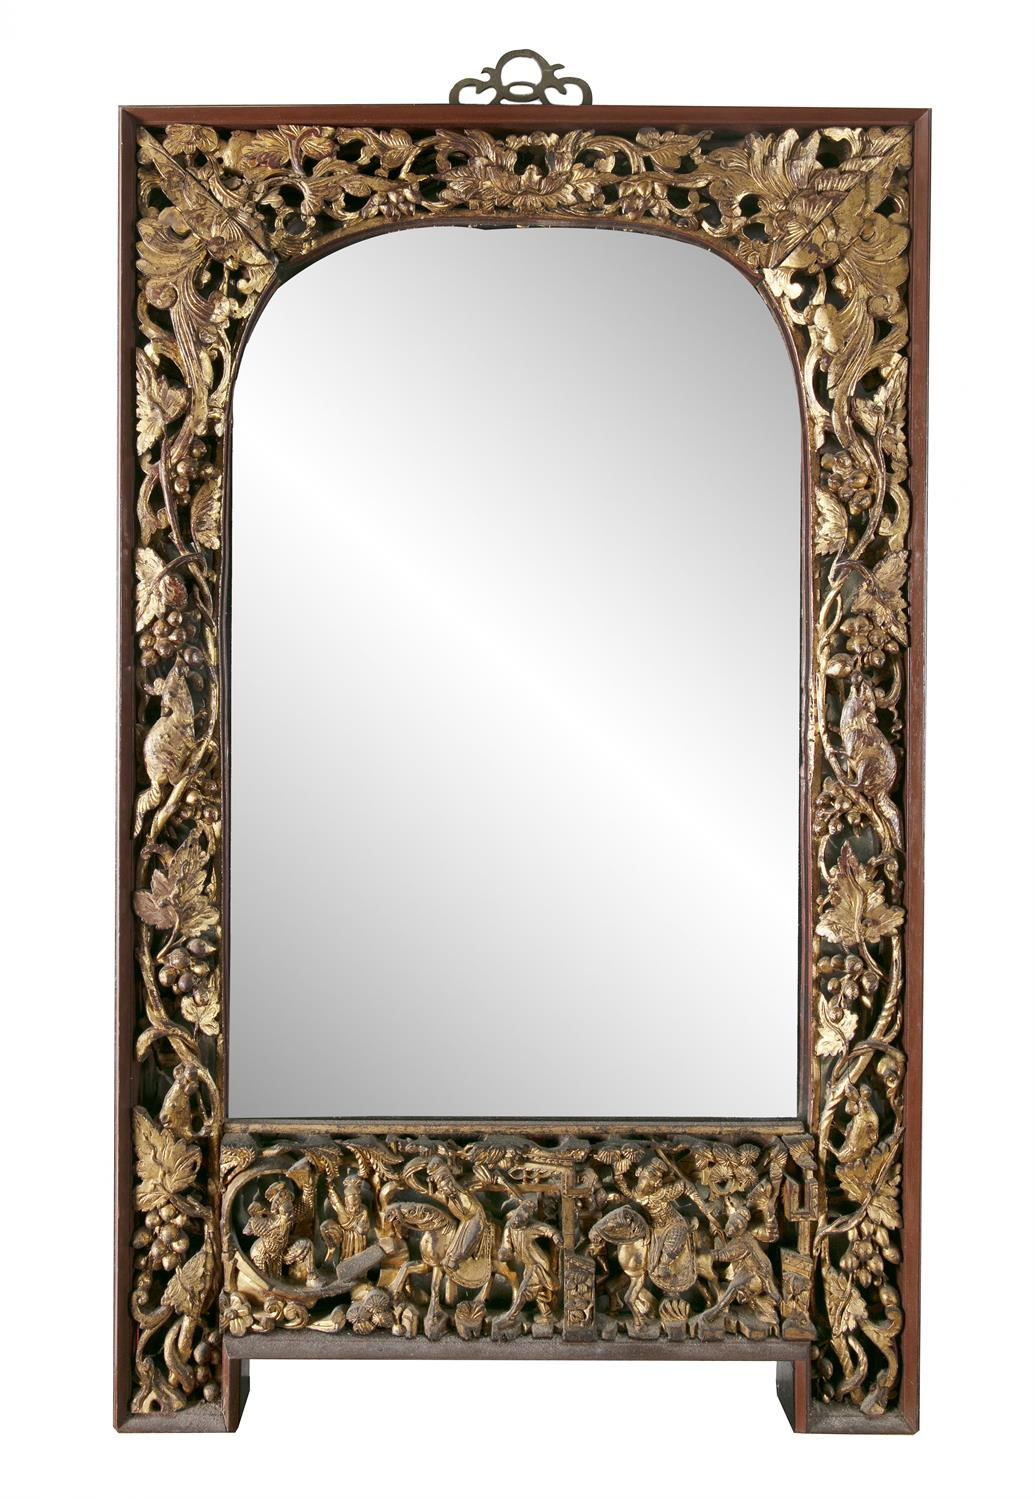 A PARCEL GILT-LACQUERED 'SQUIRRELS AND GRAPES' RETICULATED WOODEN FRAME SET WITH A MIRROR, Vietnam/ - Image 3 of 3